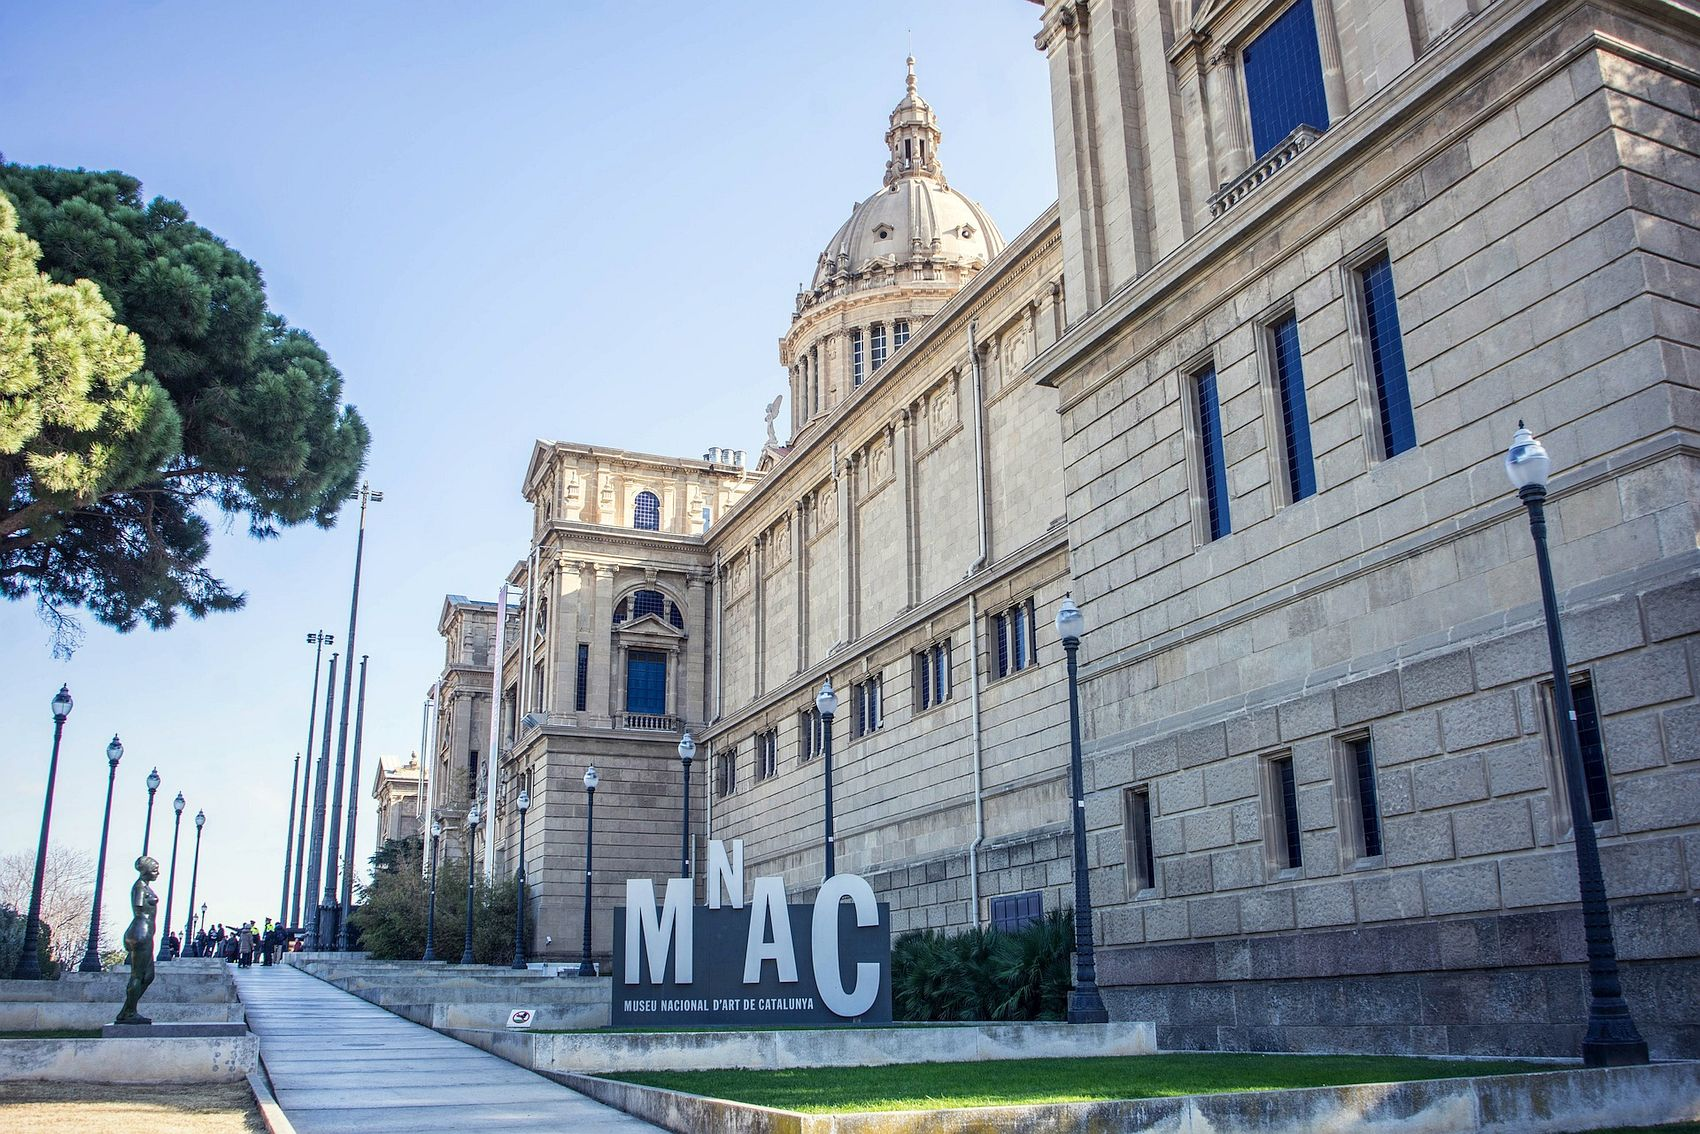 National Art Museum of Catalonia